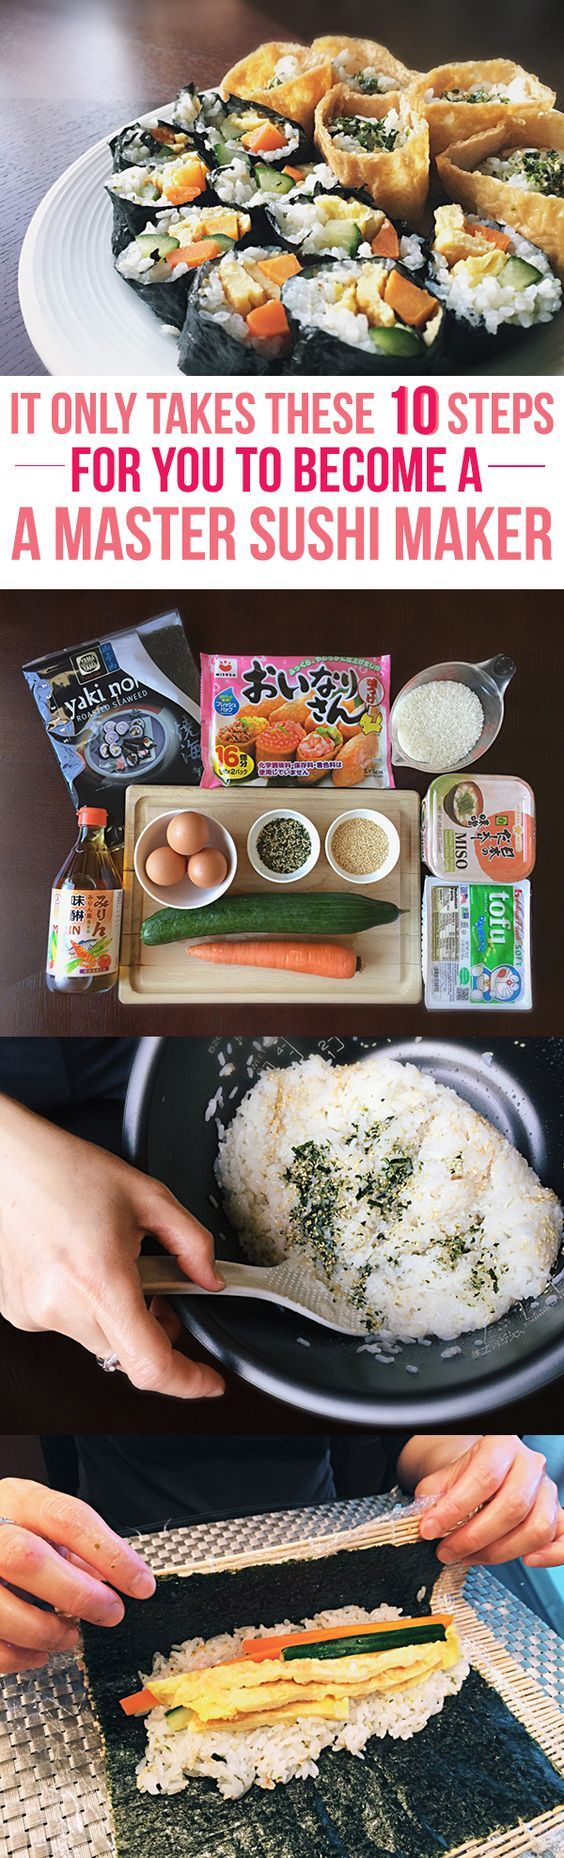 You've always wanted to make sushi at home---to save tons of money. Here is the ultimate guide to becoming a sushi master in your own kitchen. What can the ten steps be?